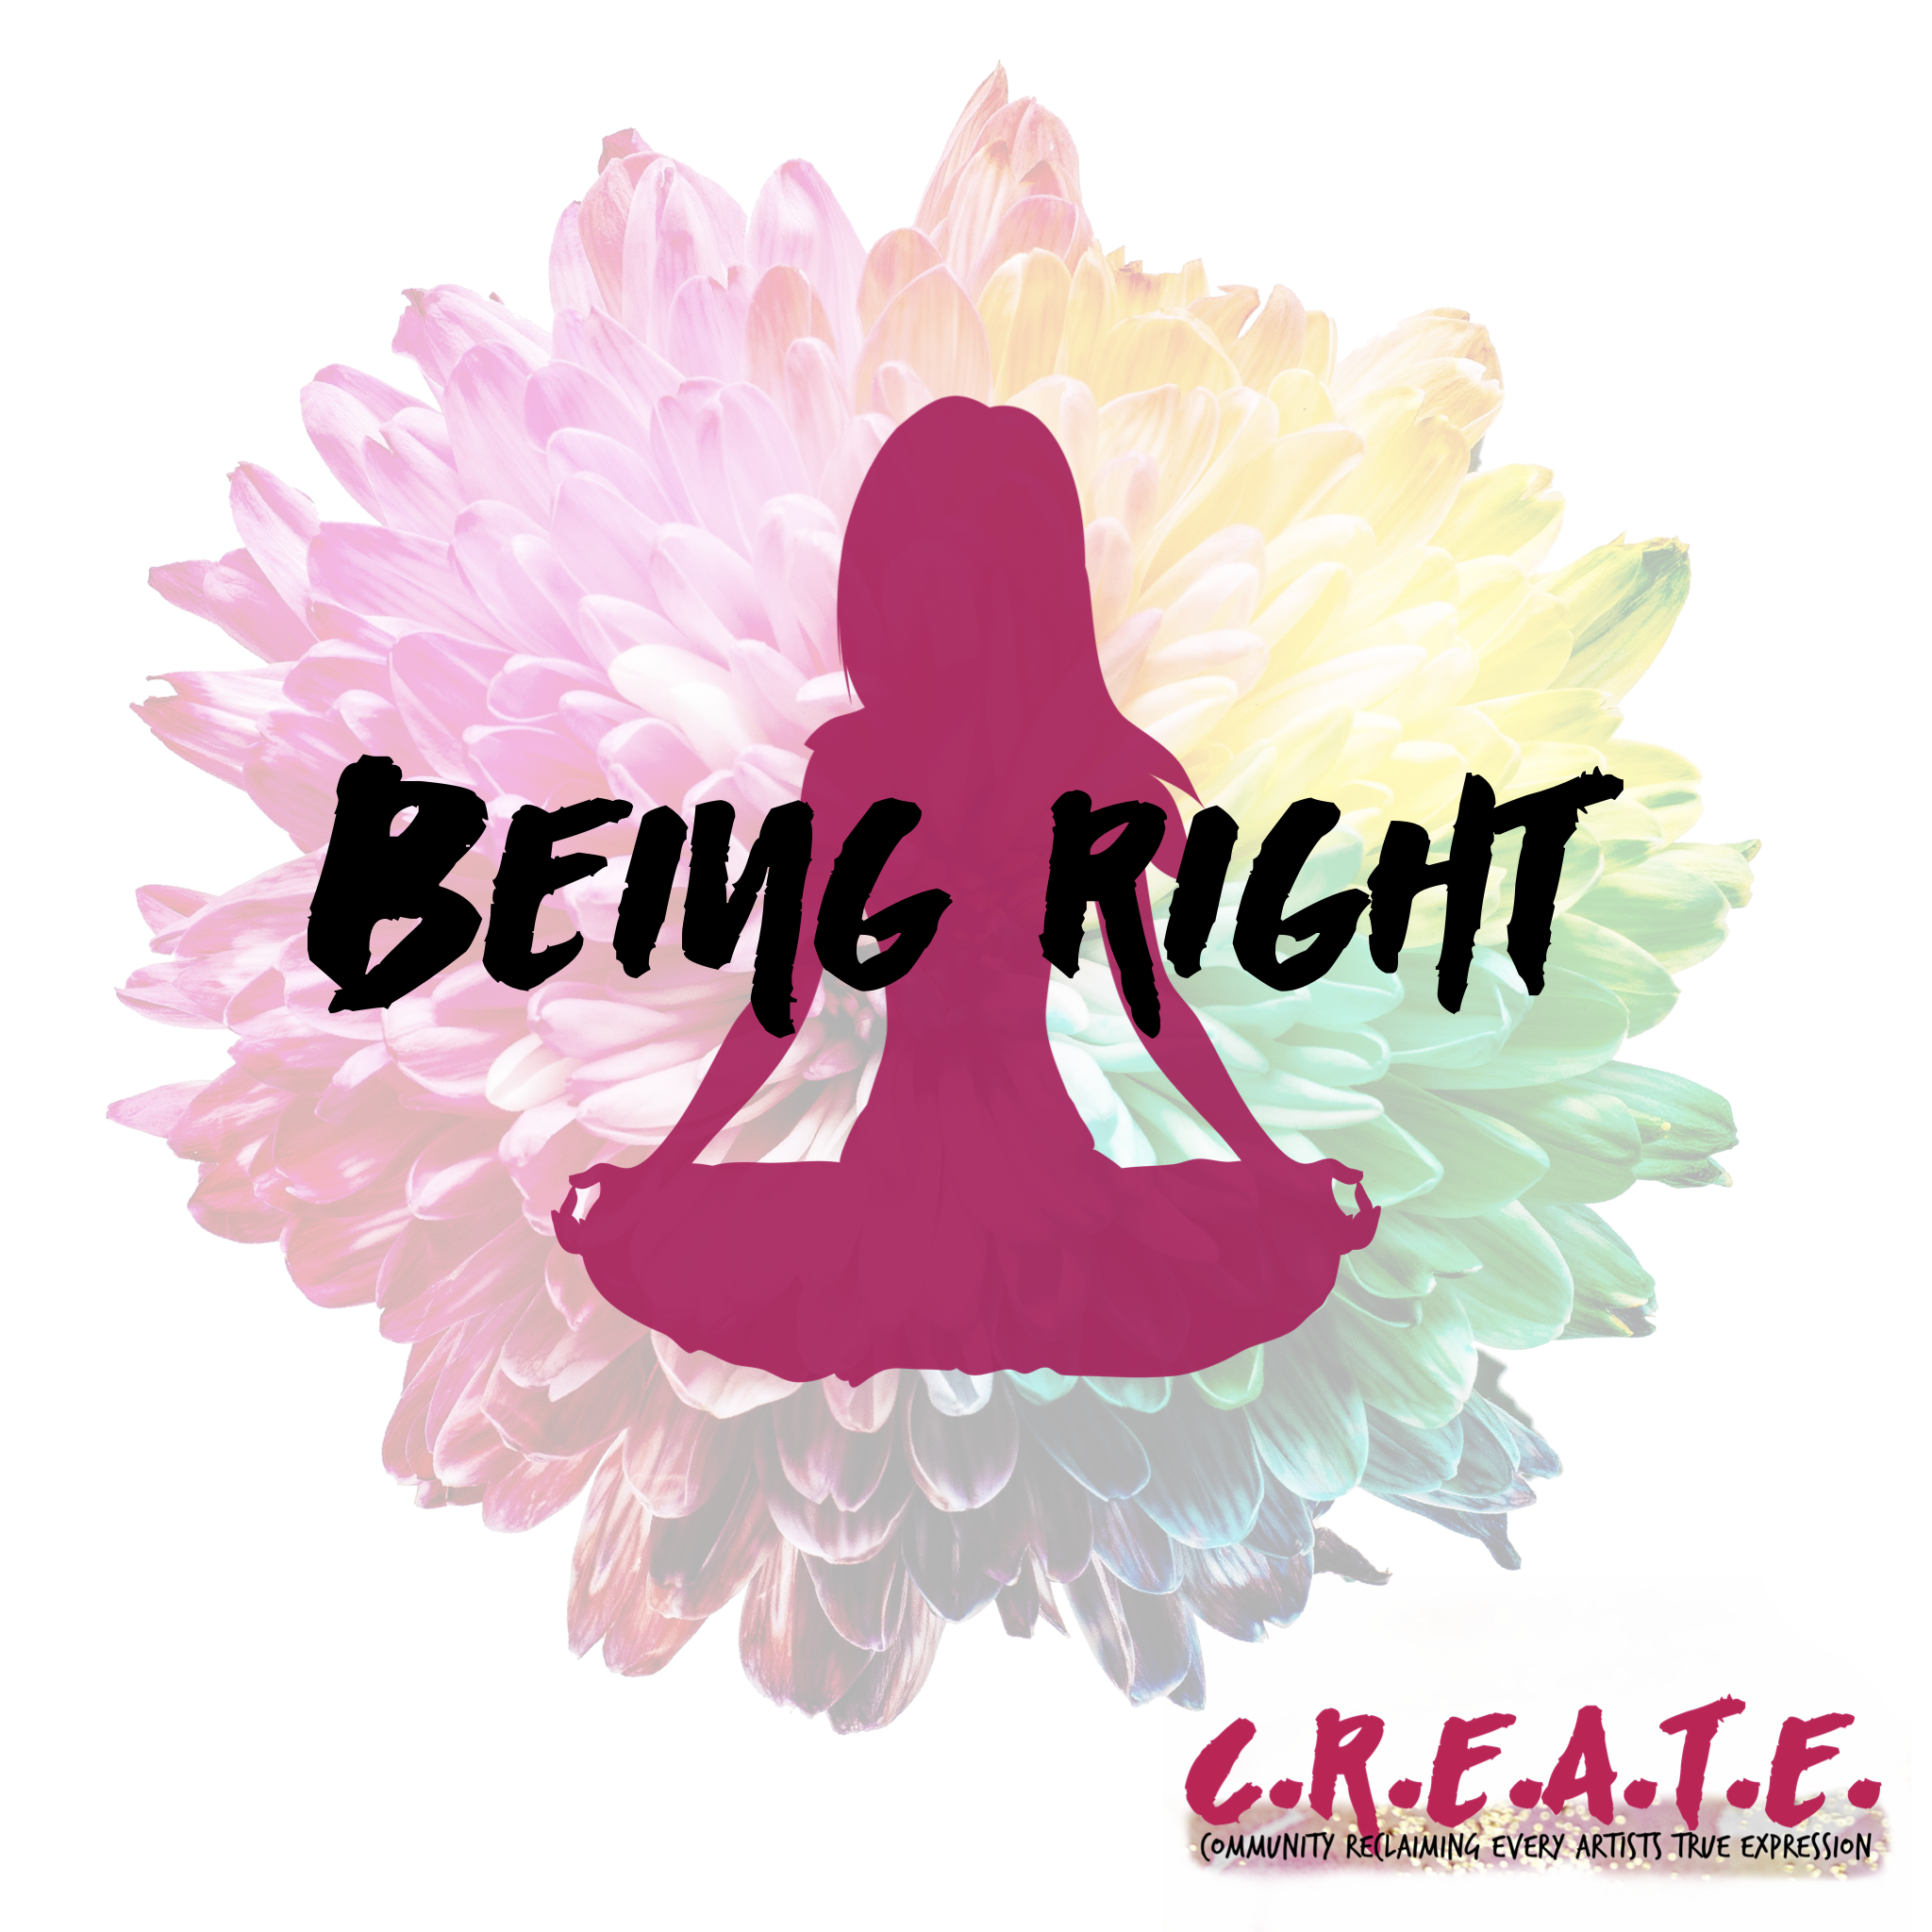 Being Right - $1.99 - Click Image To Purchase!